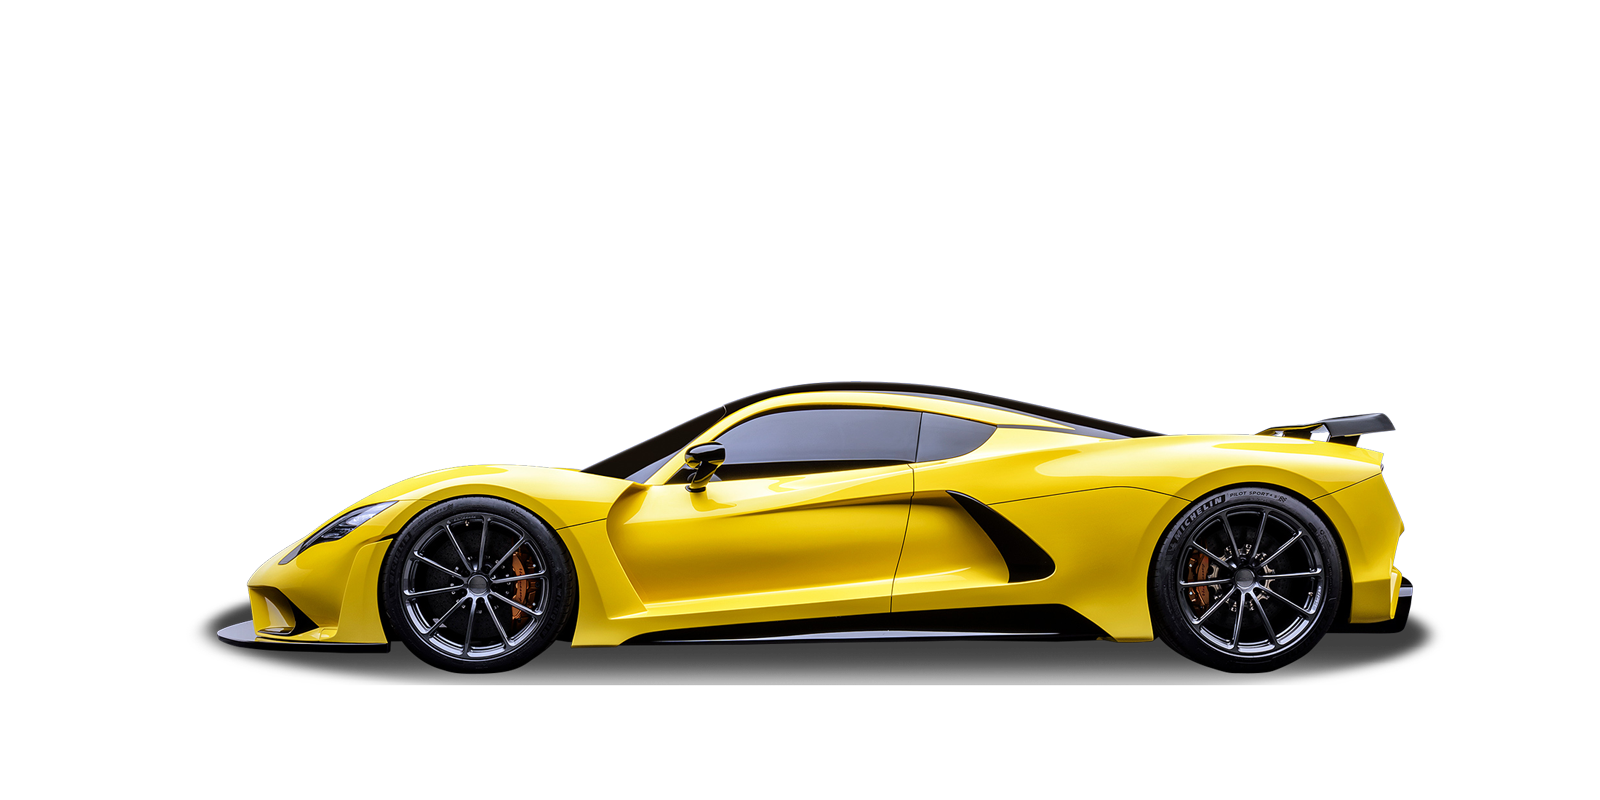 New Hennessey Venom F5 Photo - Side view